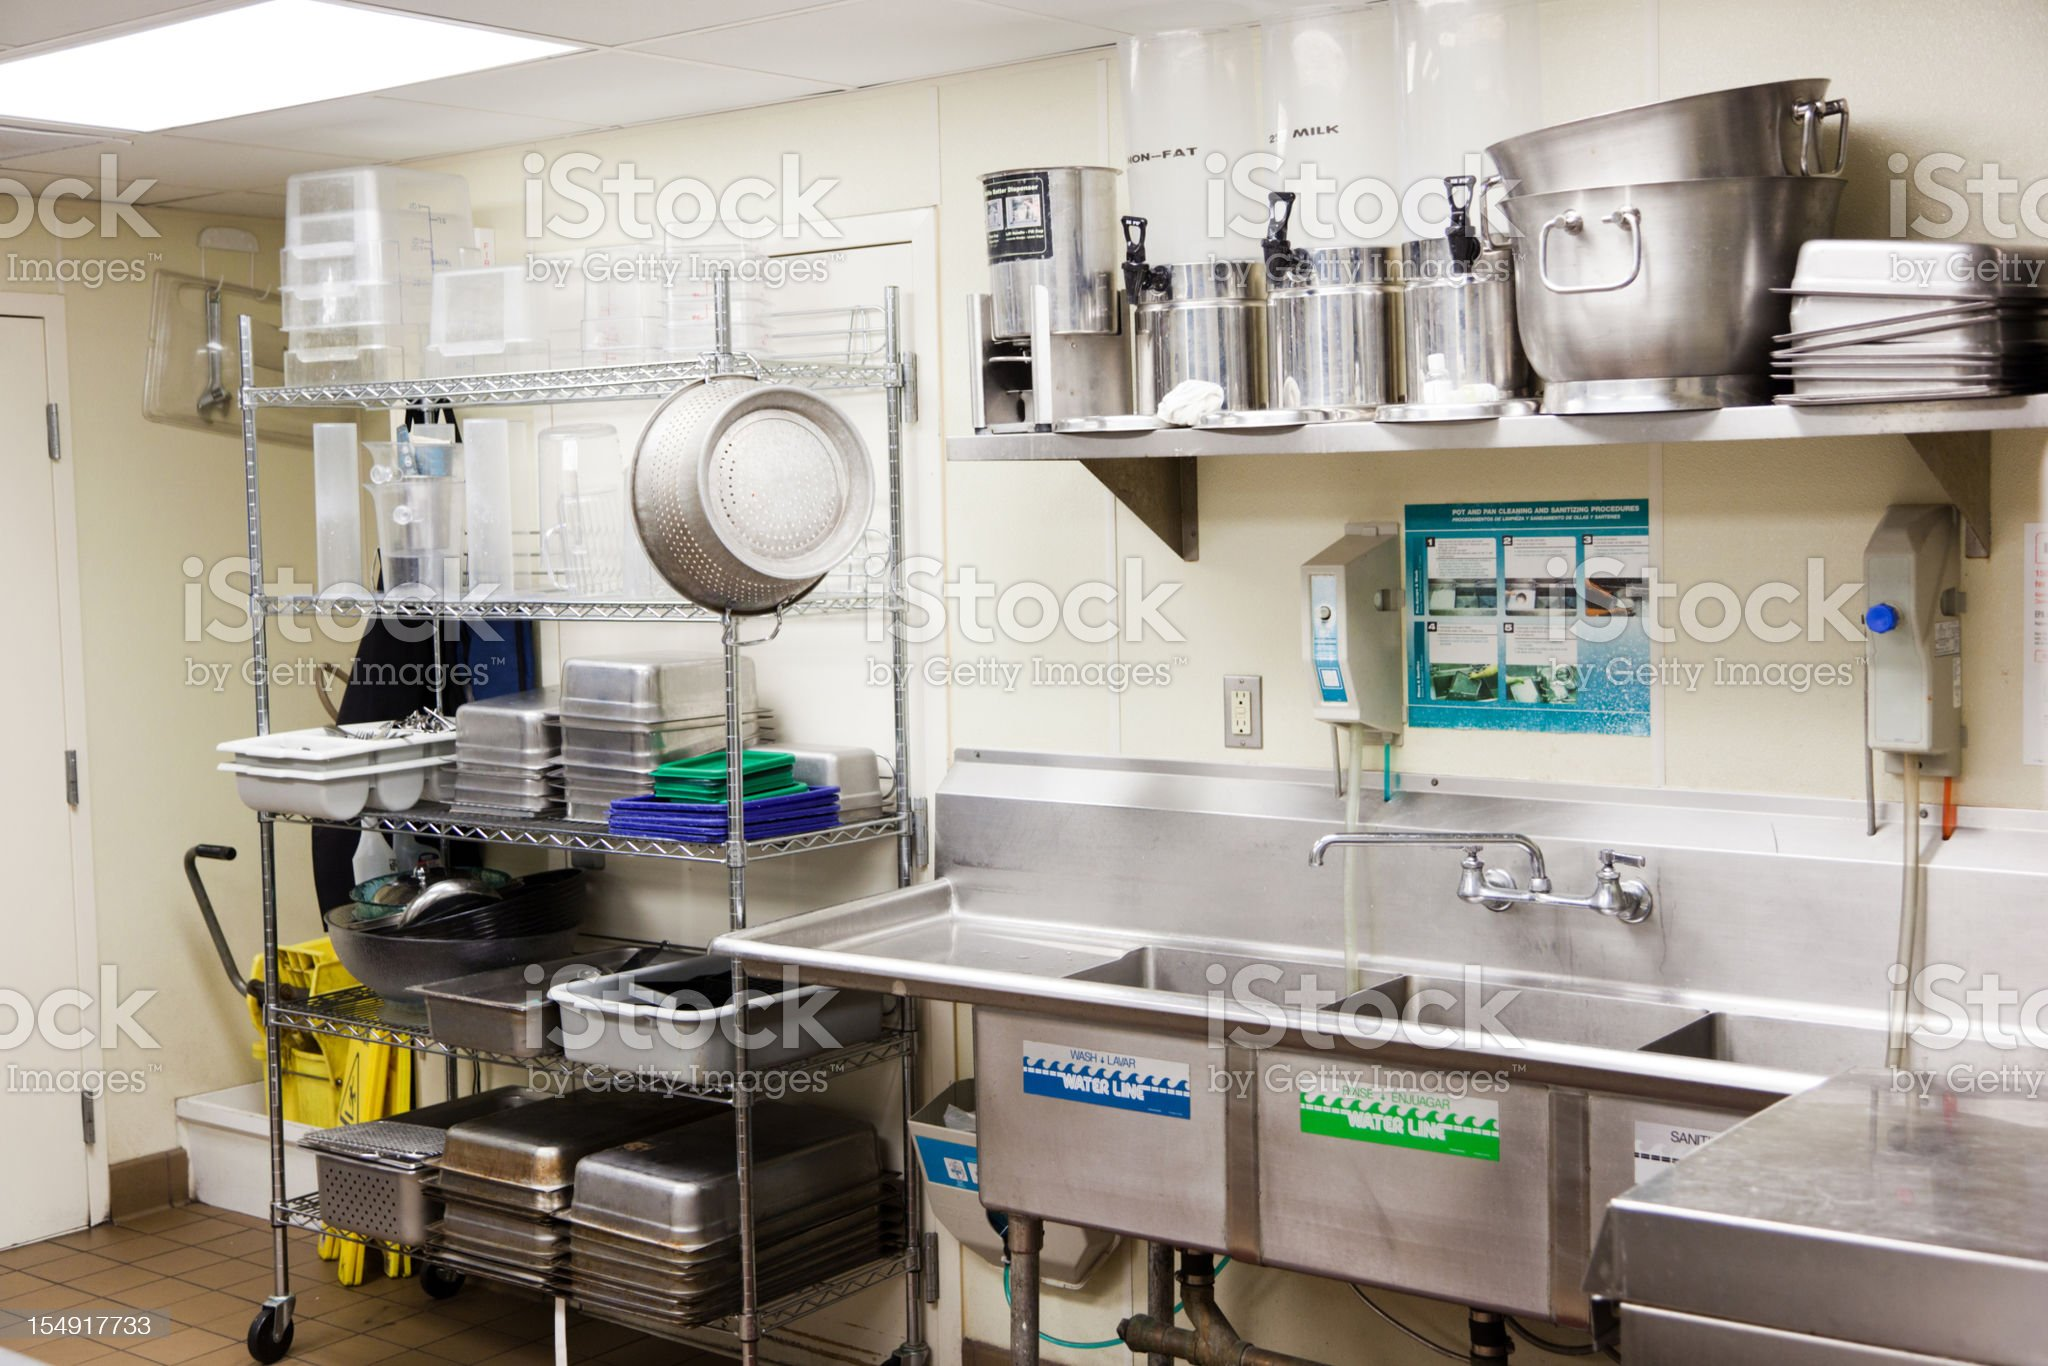 Commercial Kitchen Dish Washing royalty-free stock photo